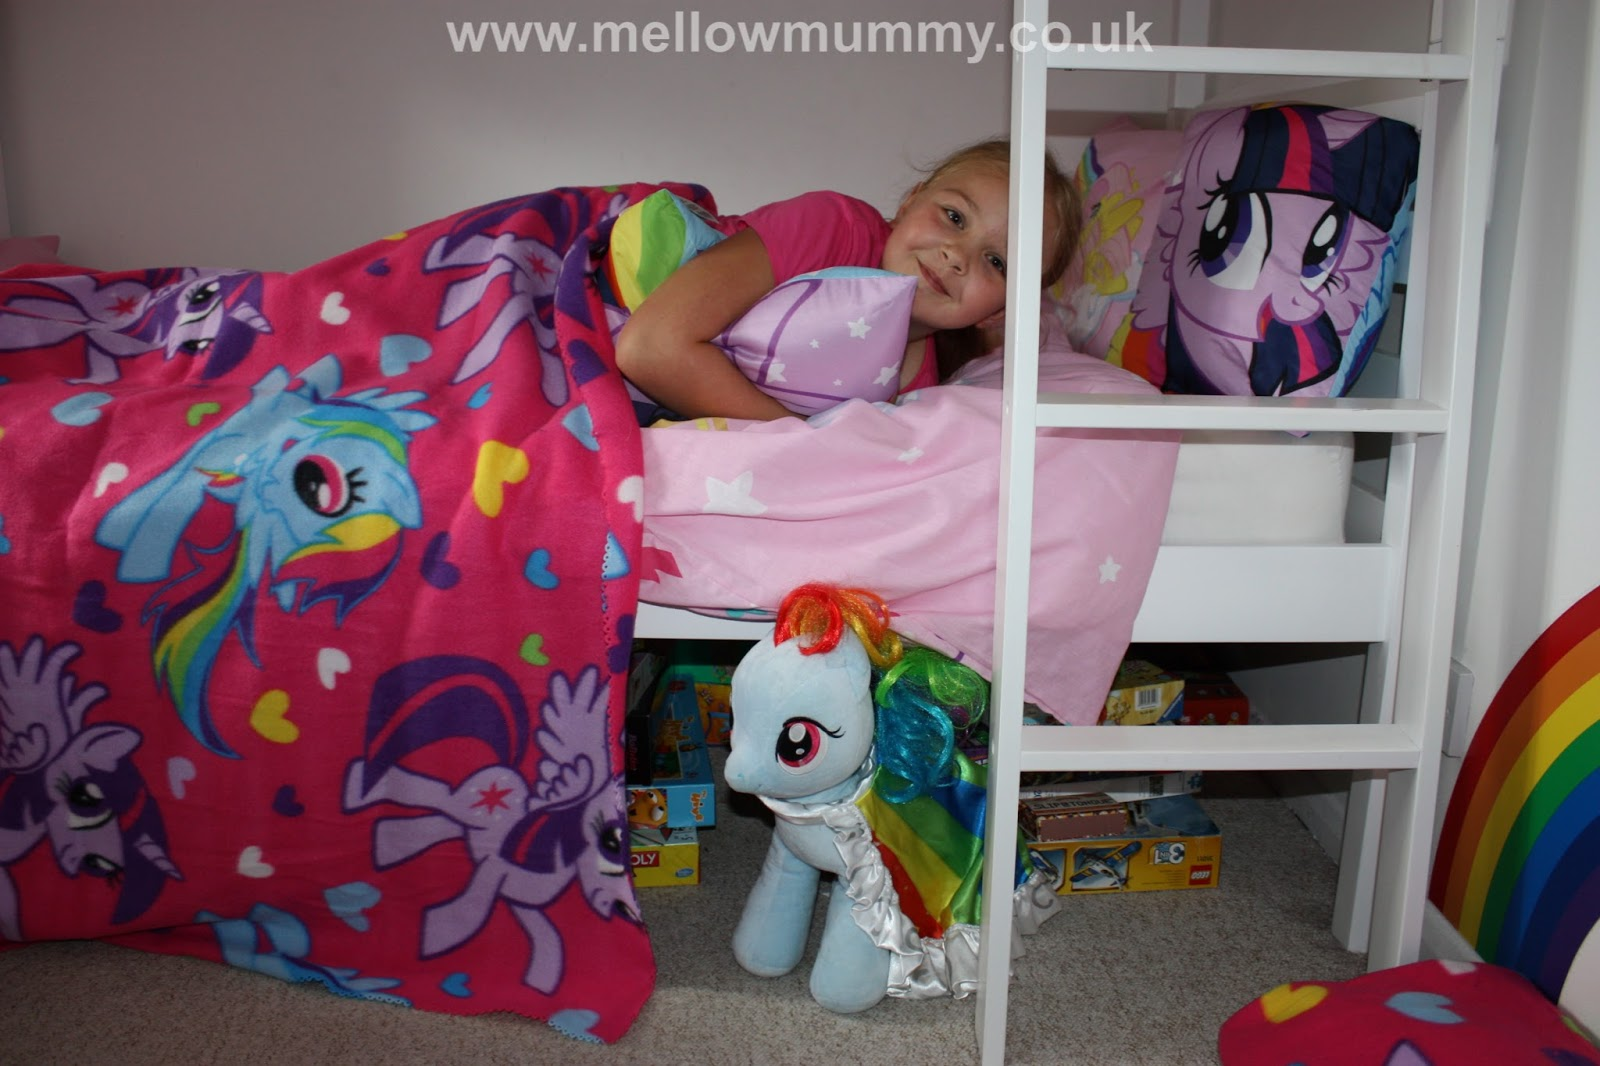 Fabulous Lara and Holly us bedroom looks fab now Both bunks are fitted out with a My Little Pony duvet cover and pillowcase Each girl has a My Little Pony cushion